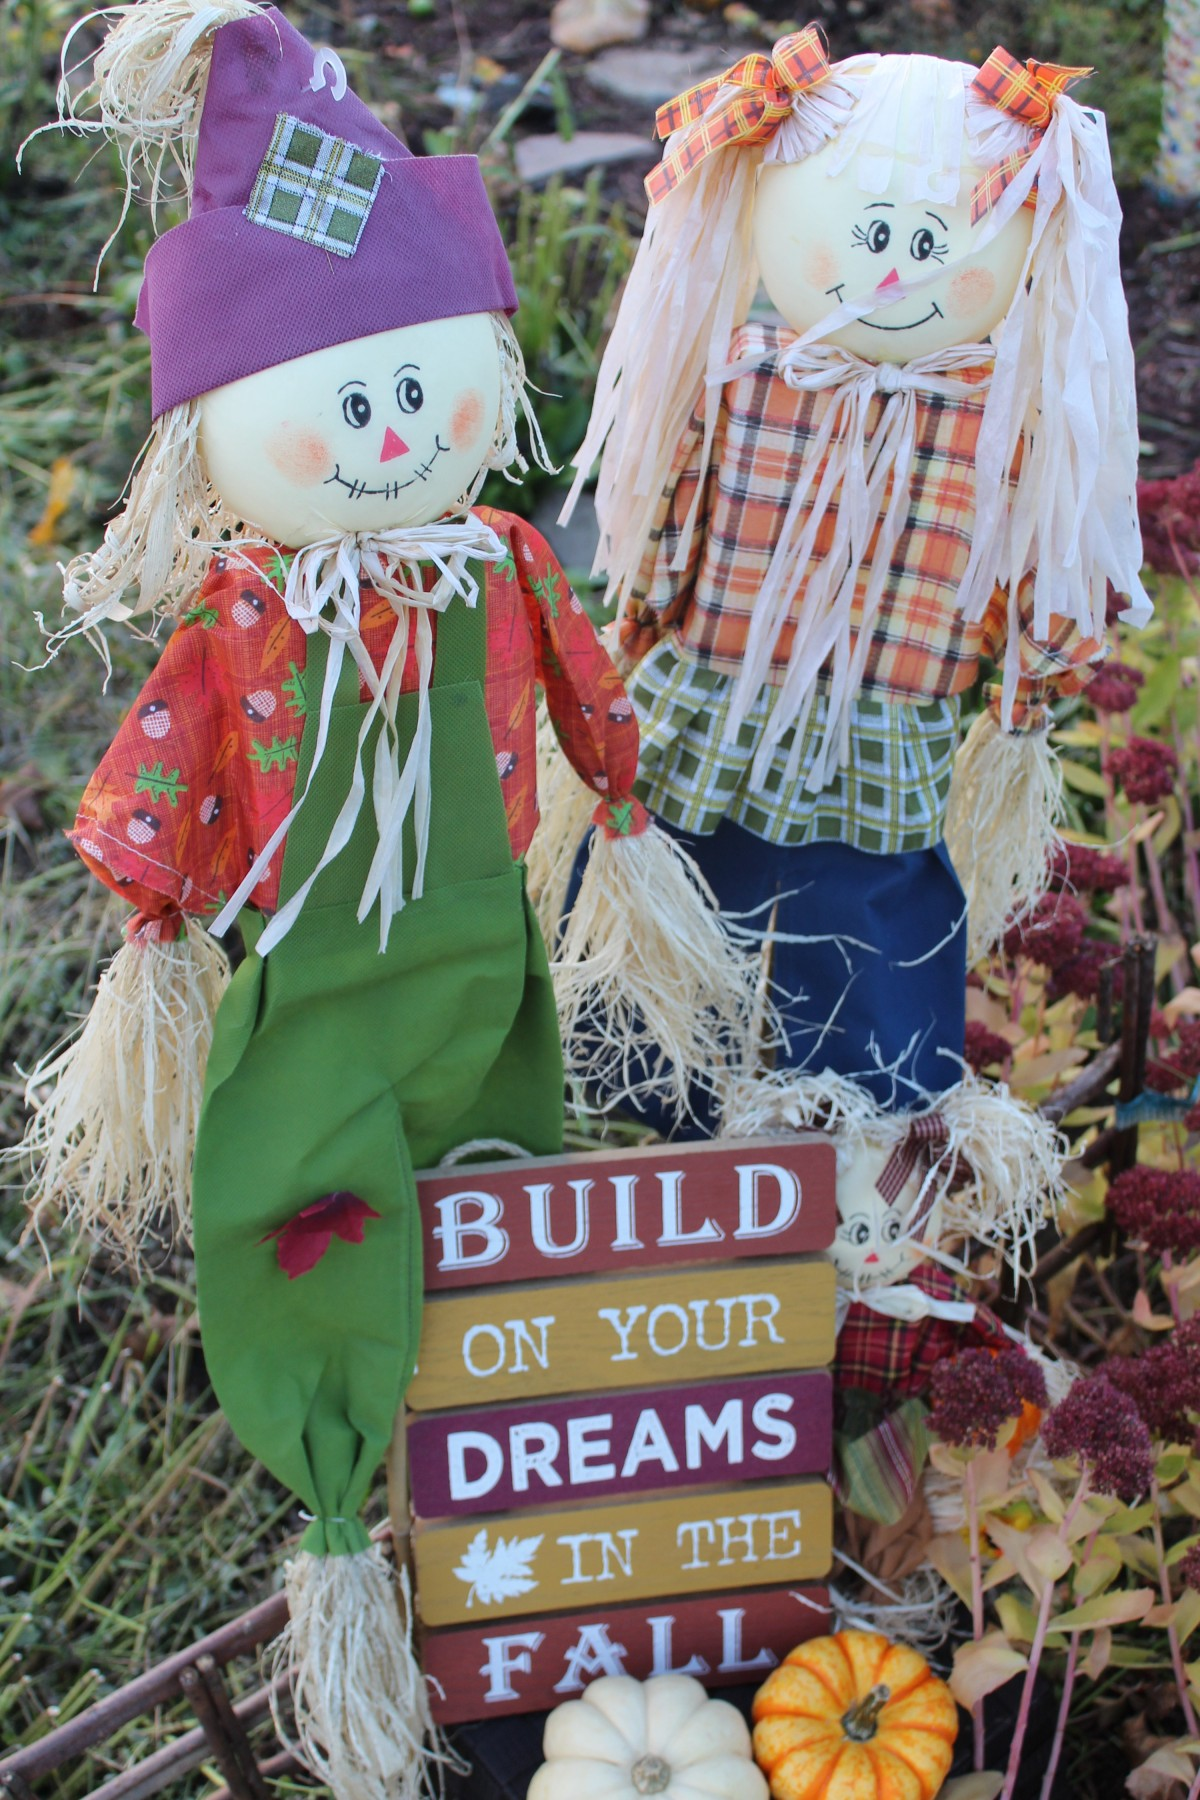 Build Your Dreams In TheFall